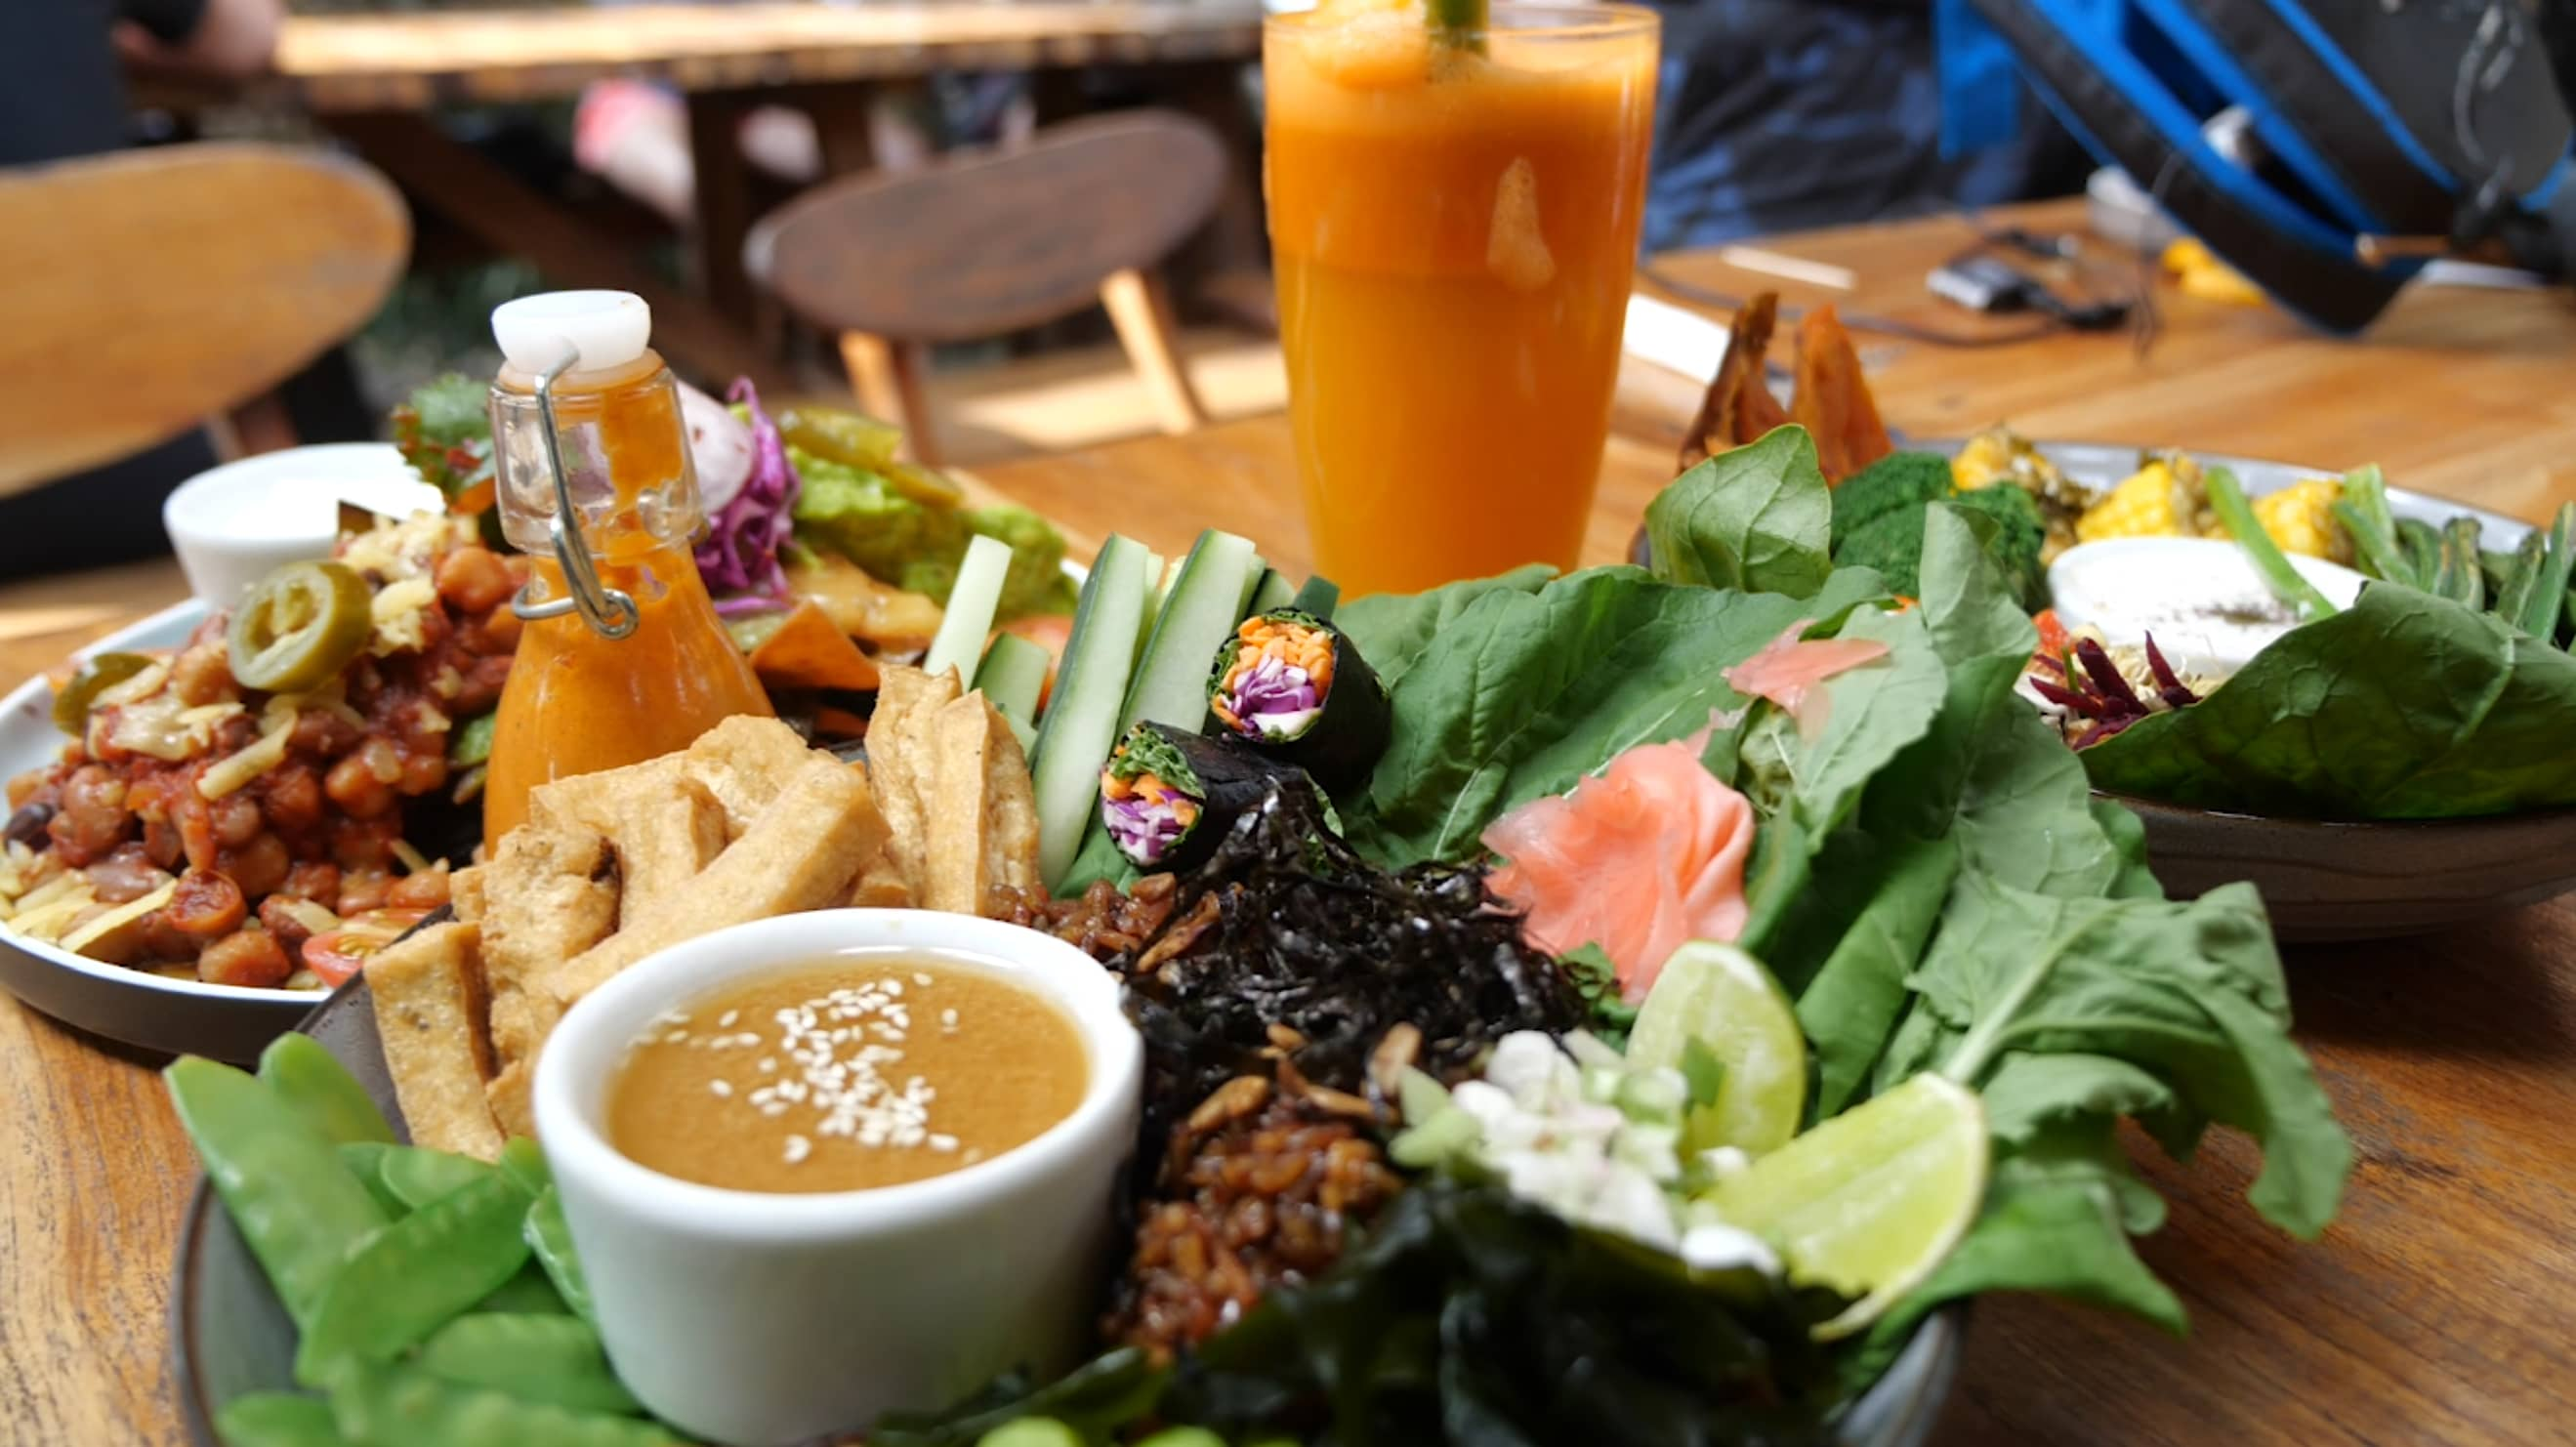 Fad or future food? Plant-based dishes are the norm in this town in Bali